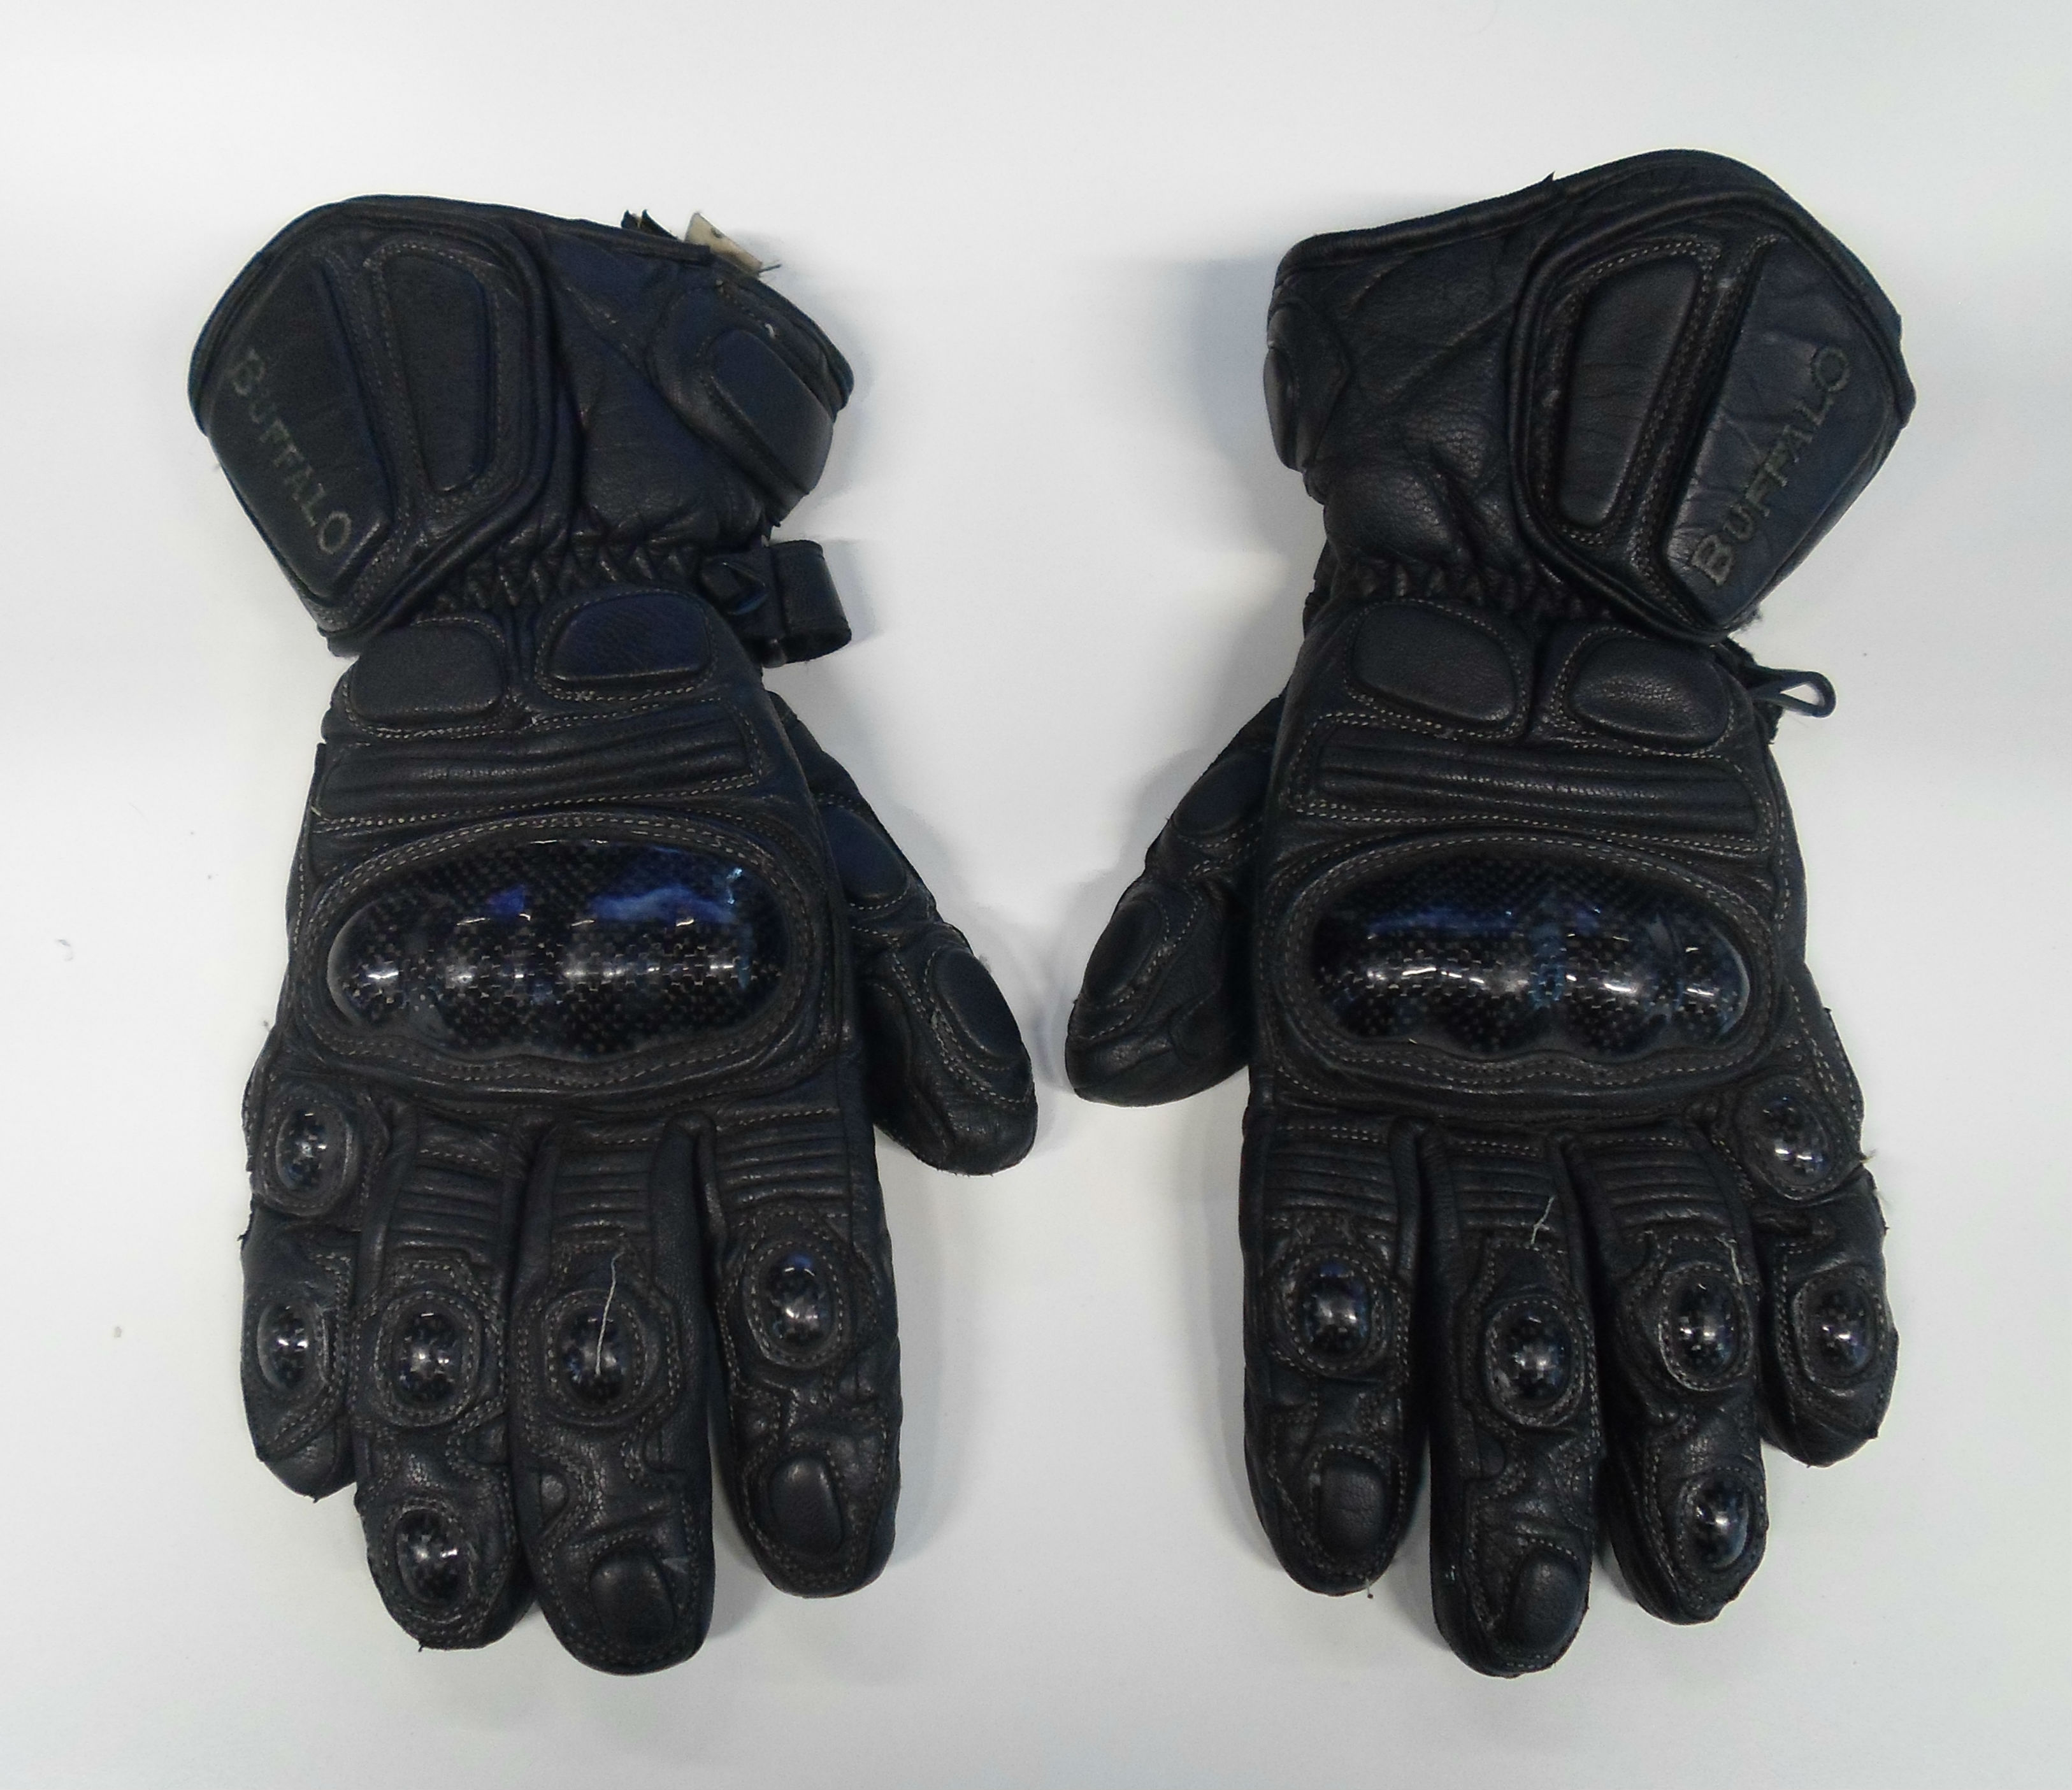 Used: Buffalo Thermosport Gloves review